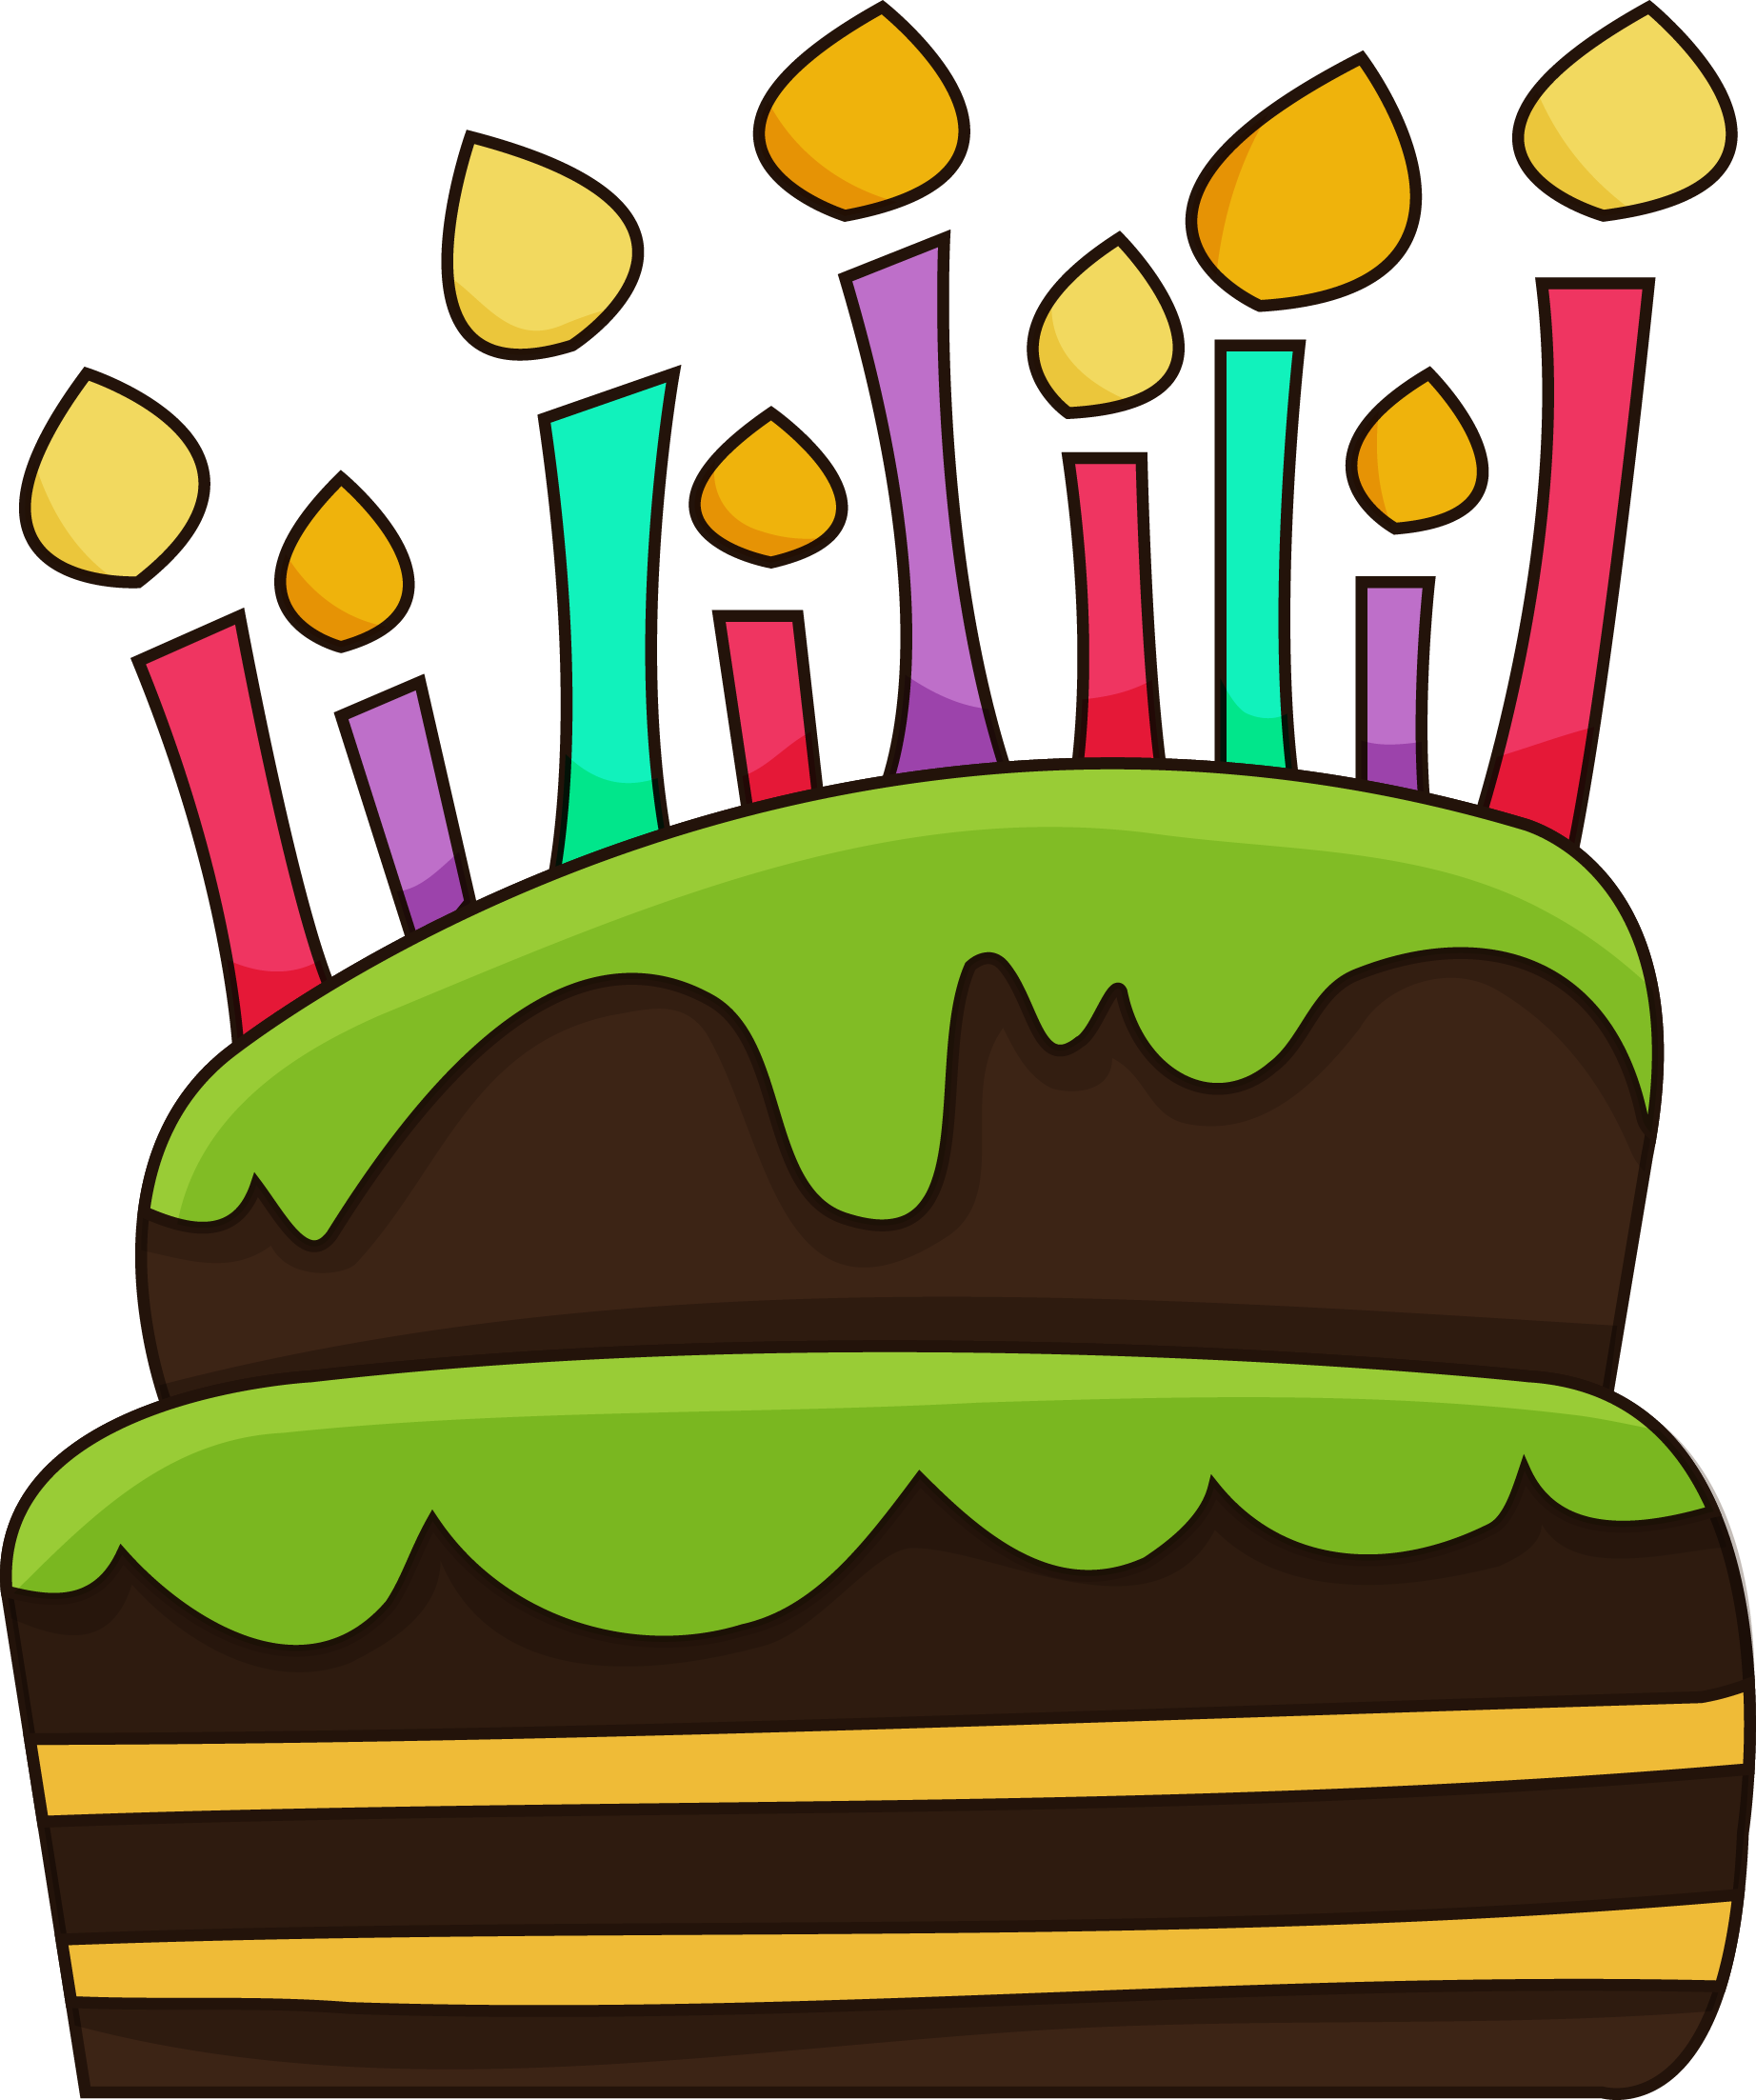 Drawings For Birthday CAkes - ClipArt Best